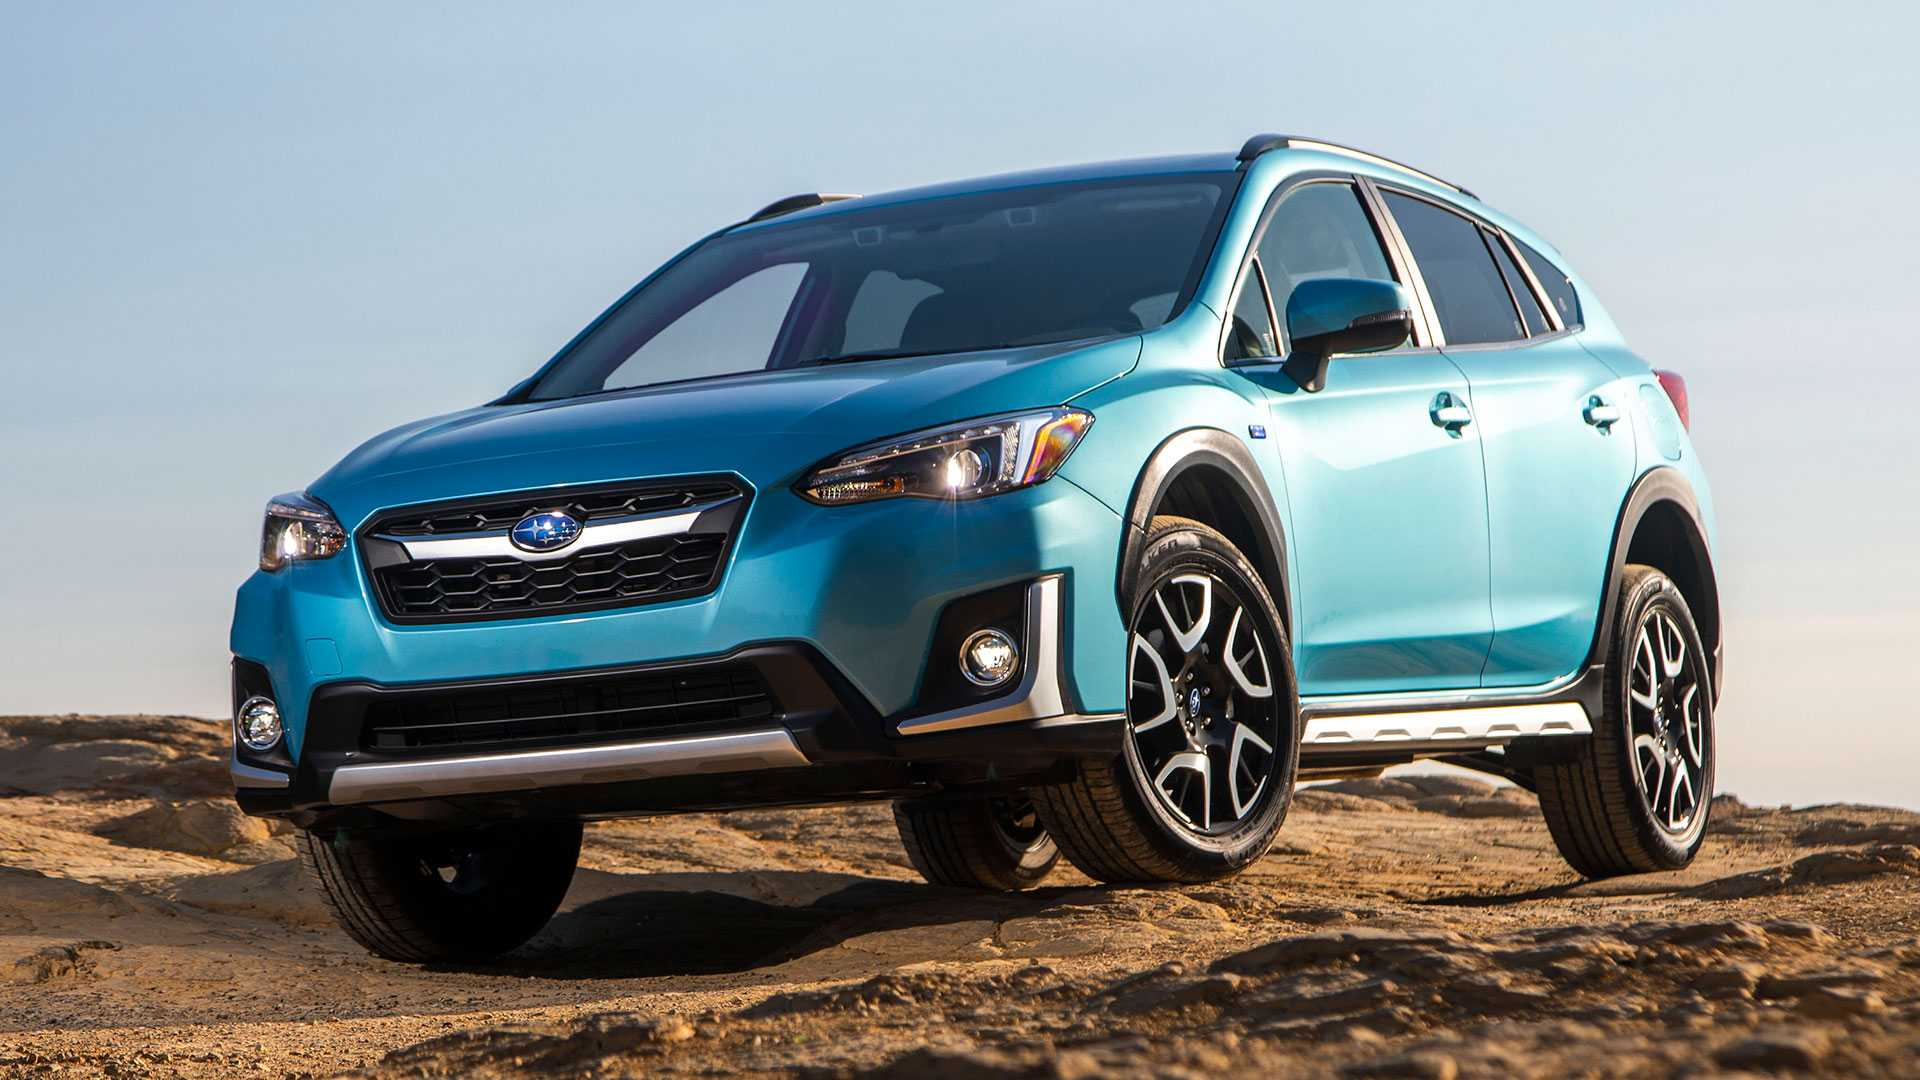 Subaru Crosstrek price in Nepal